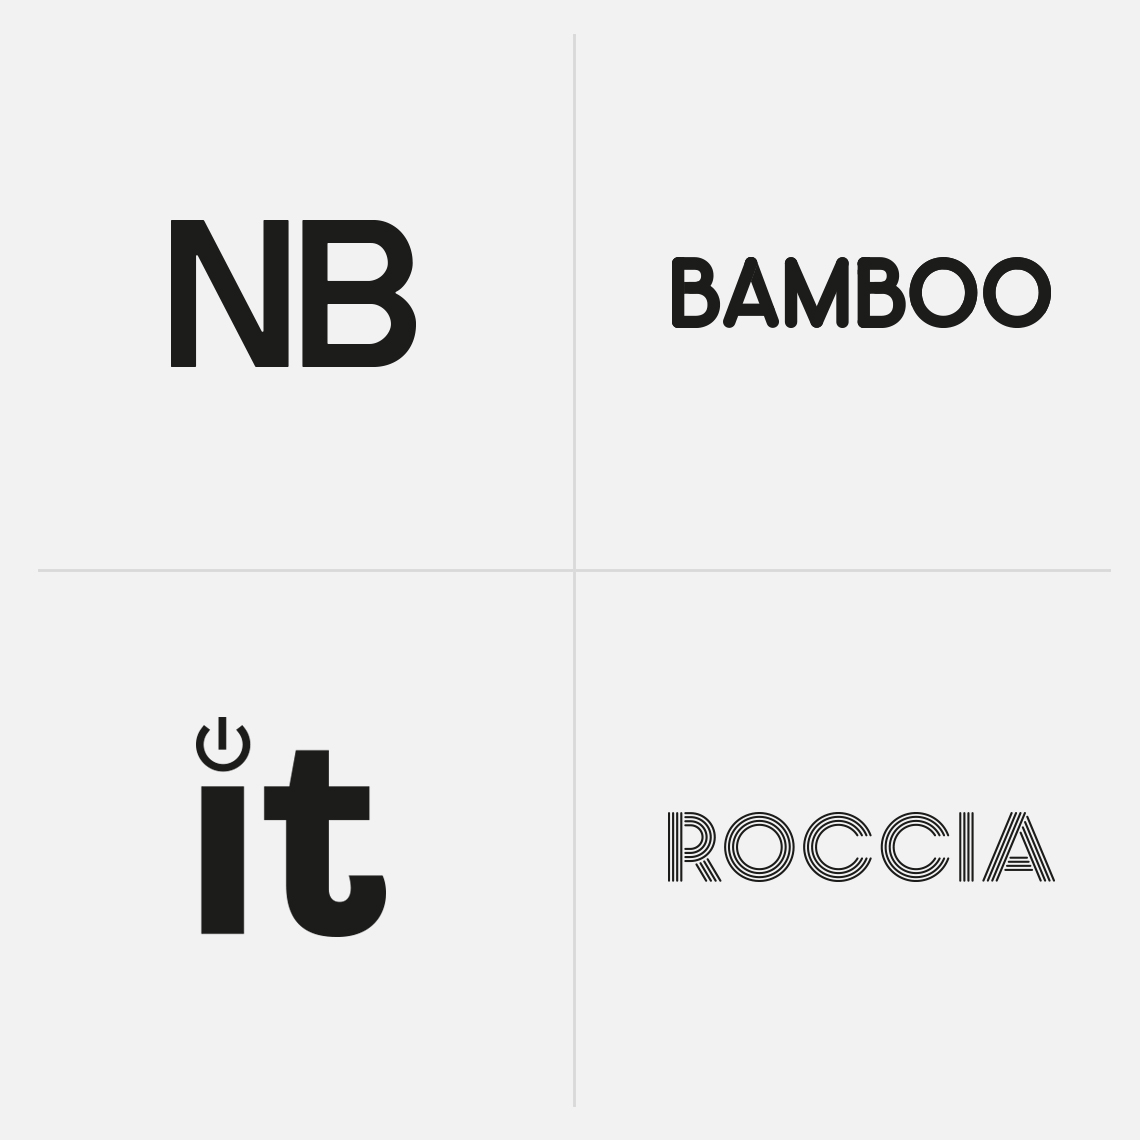 NB Bamboo Clever IT Roccia Brand Identity